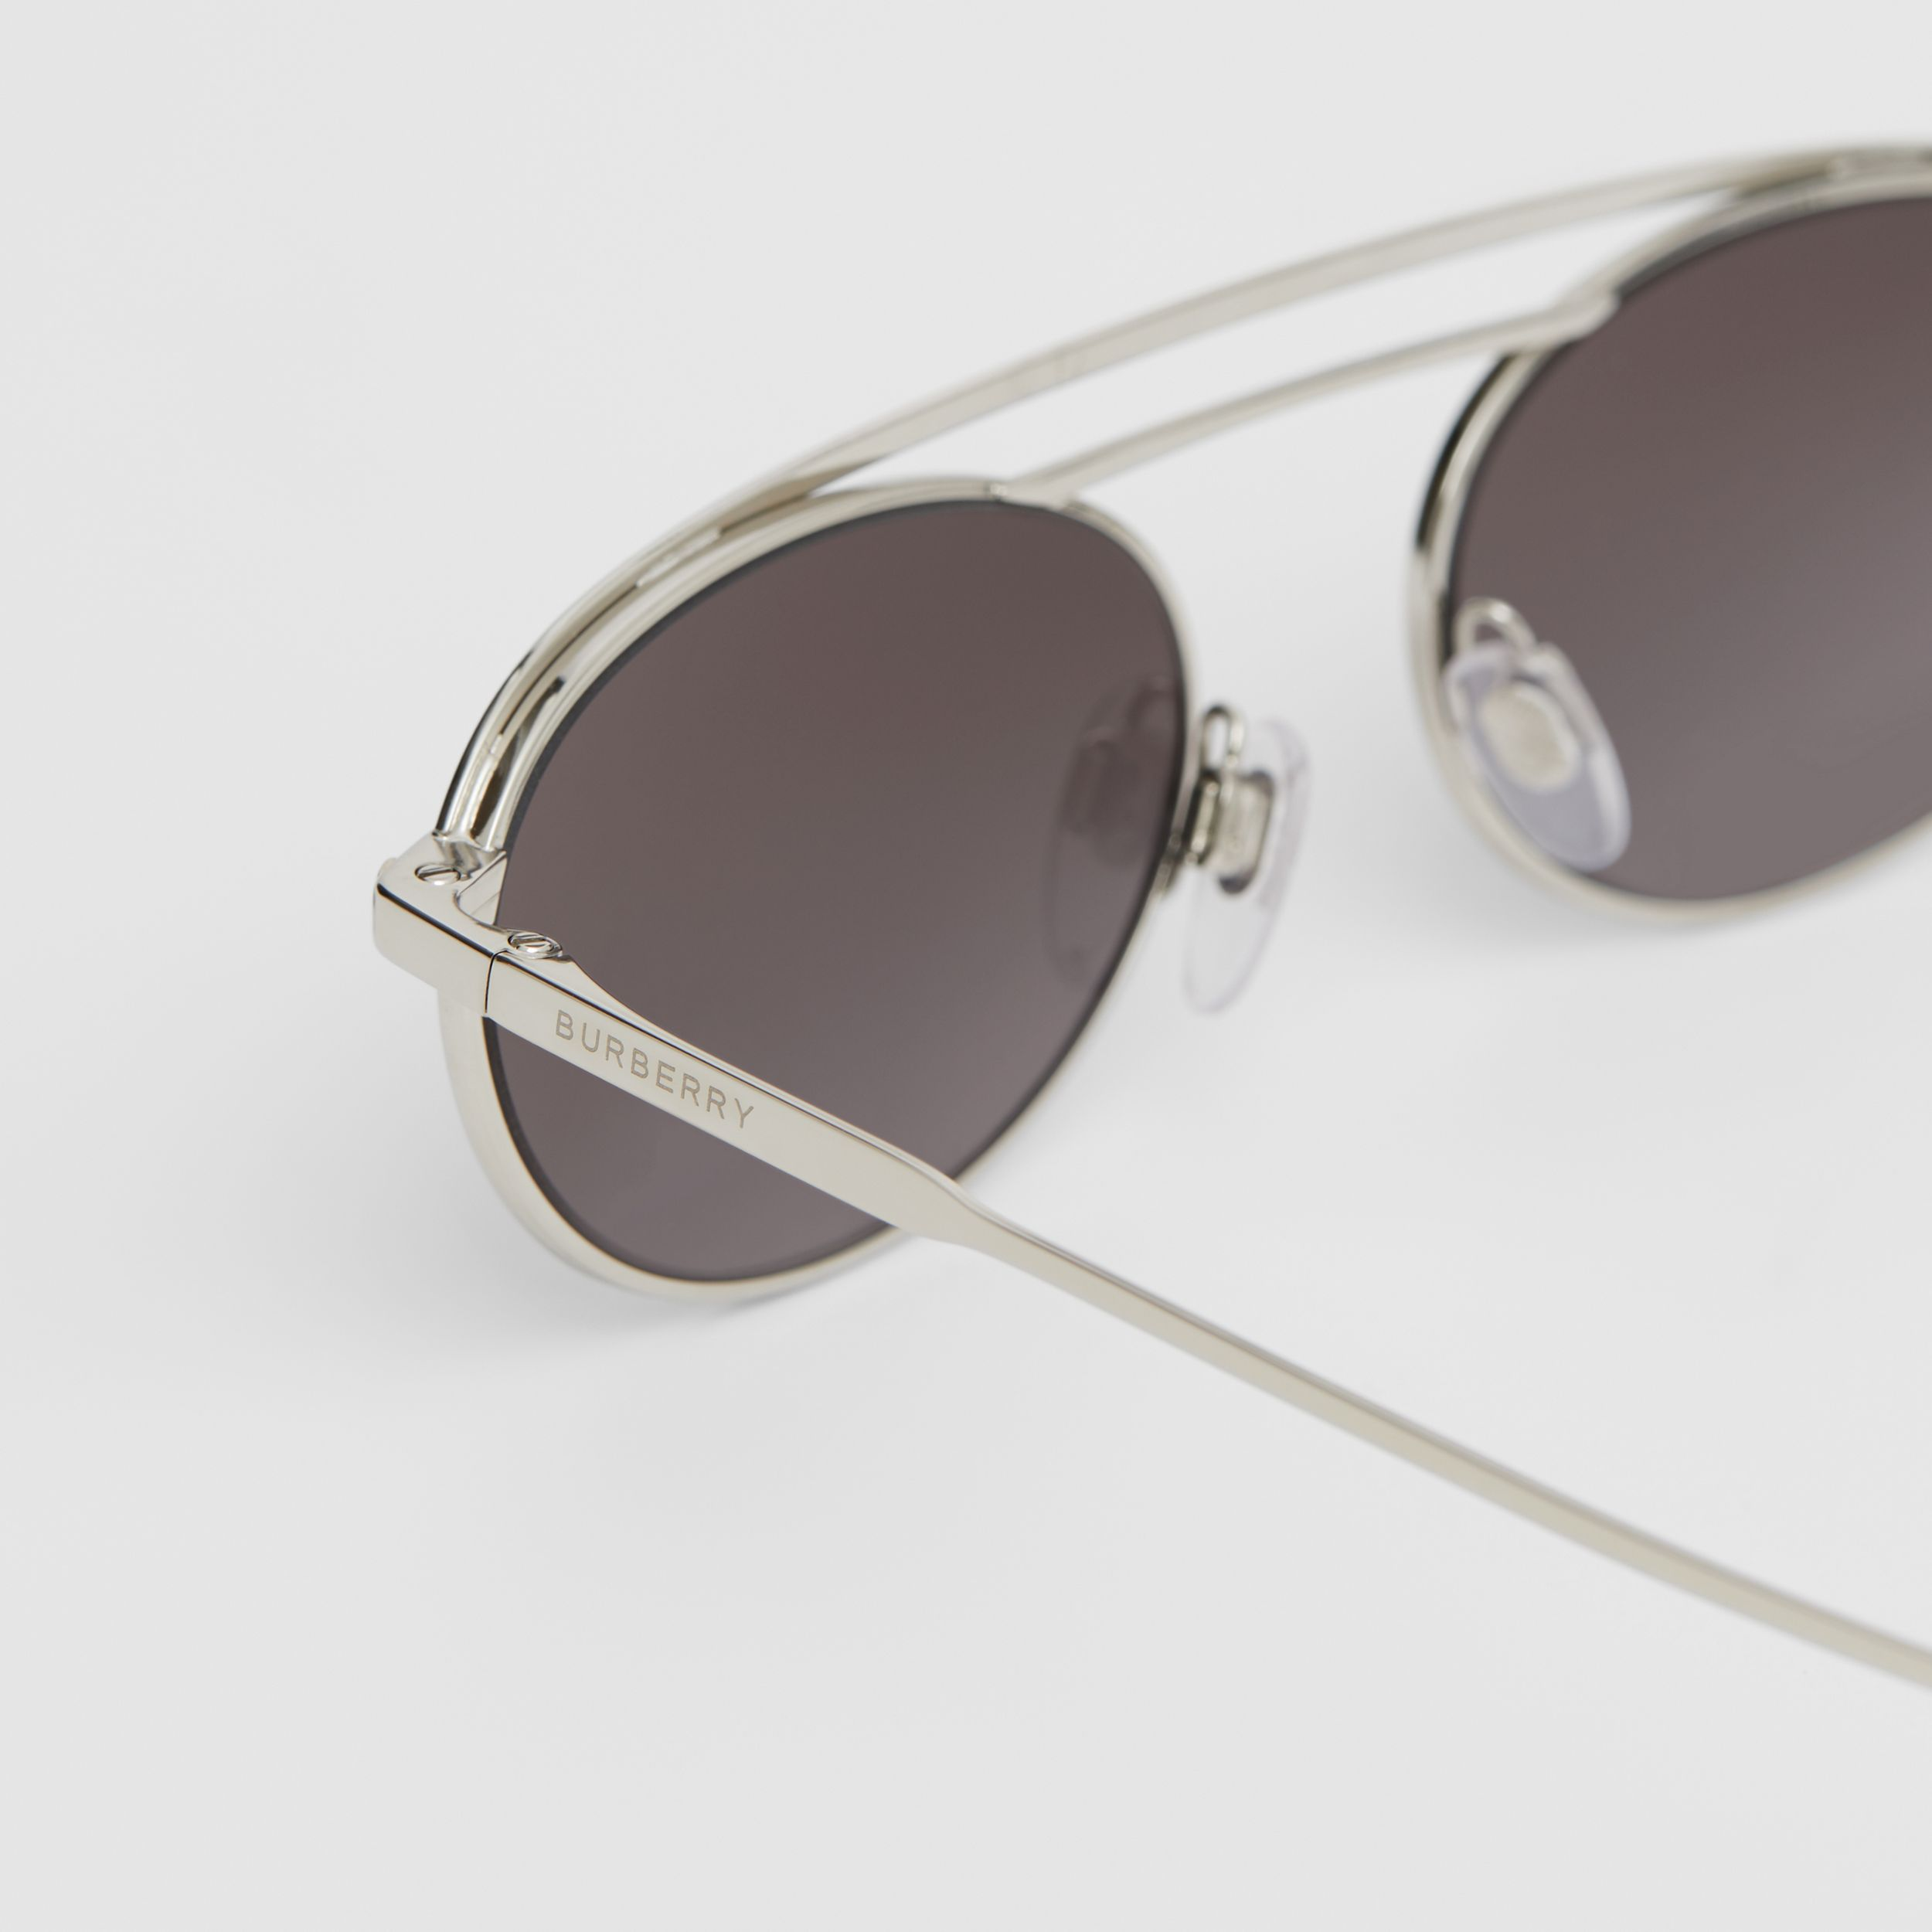 Oval Frame Sunglasses in Grey - Women | Burberry Canada - 2